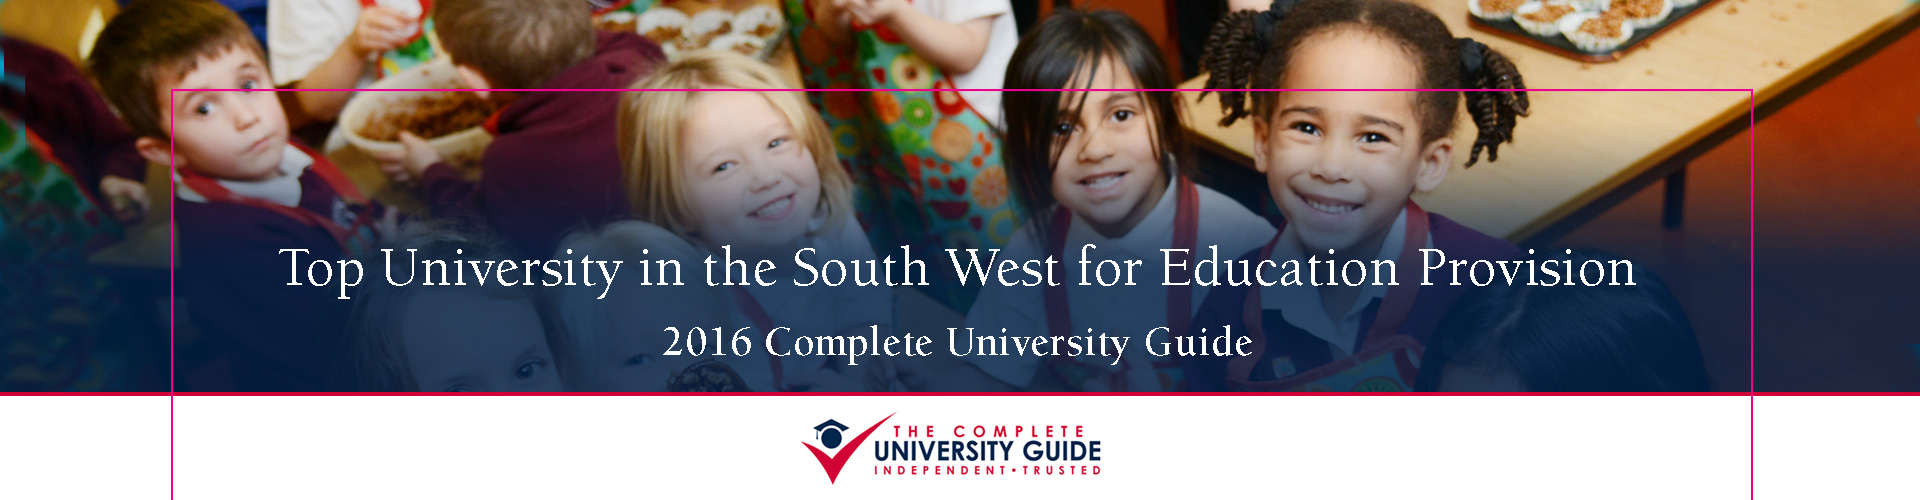 Top University in South West for Education